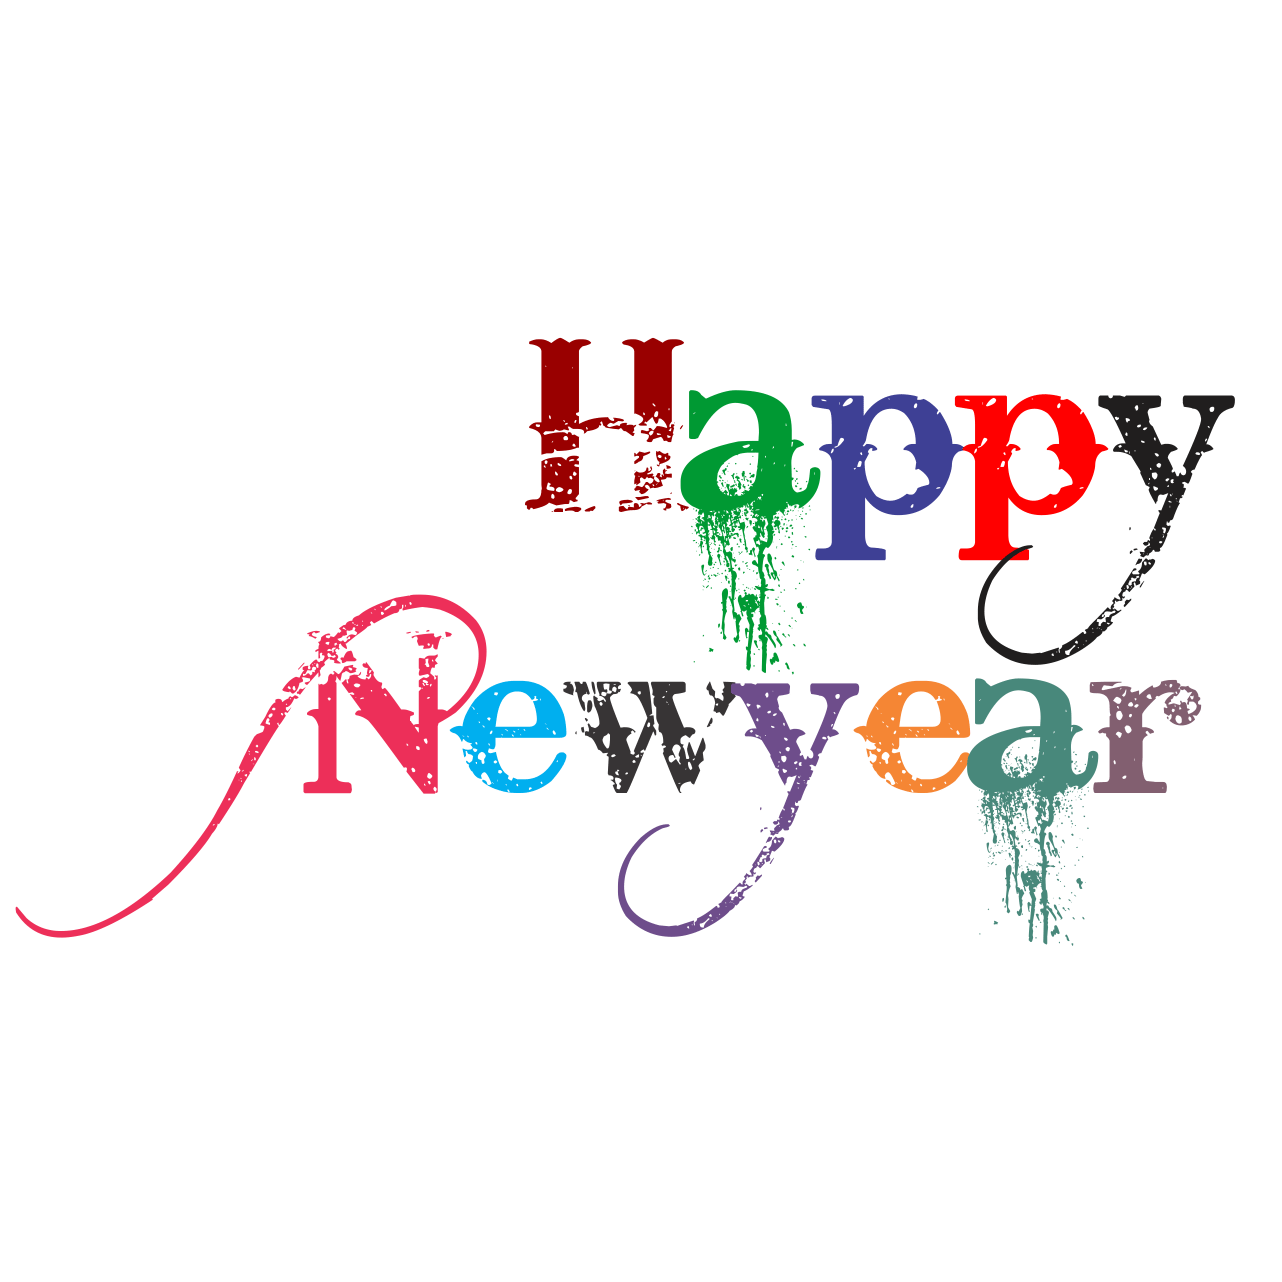 Download png for picsart. Happy new year photoshop